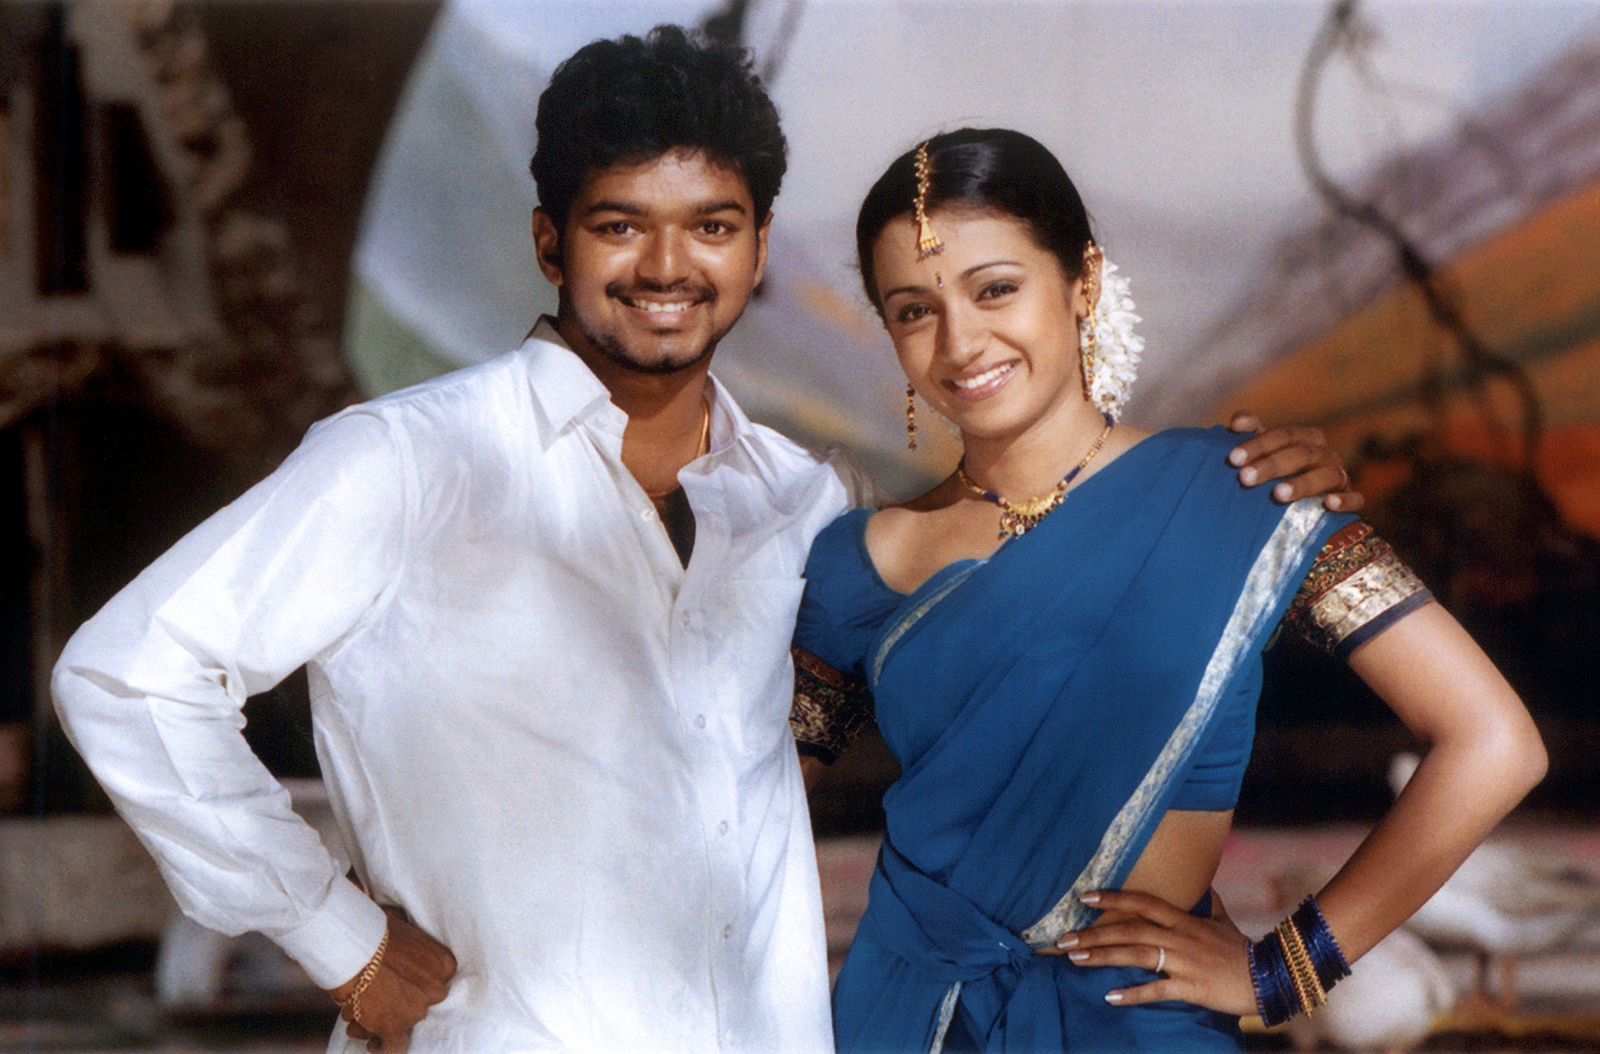 Thalapathy Vijay and Trisha in Ghilli